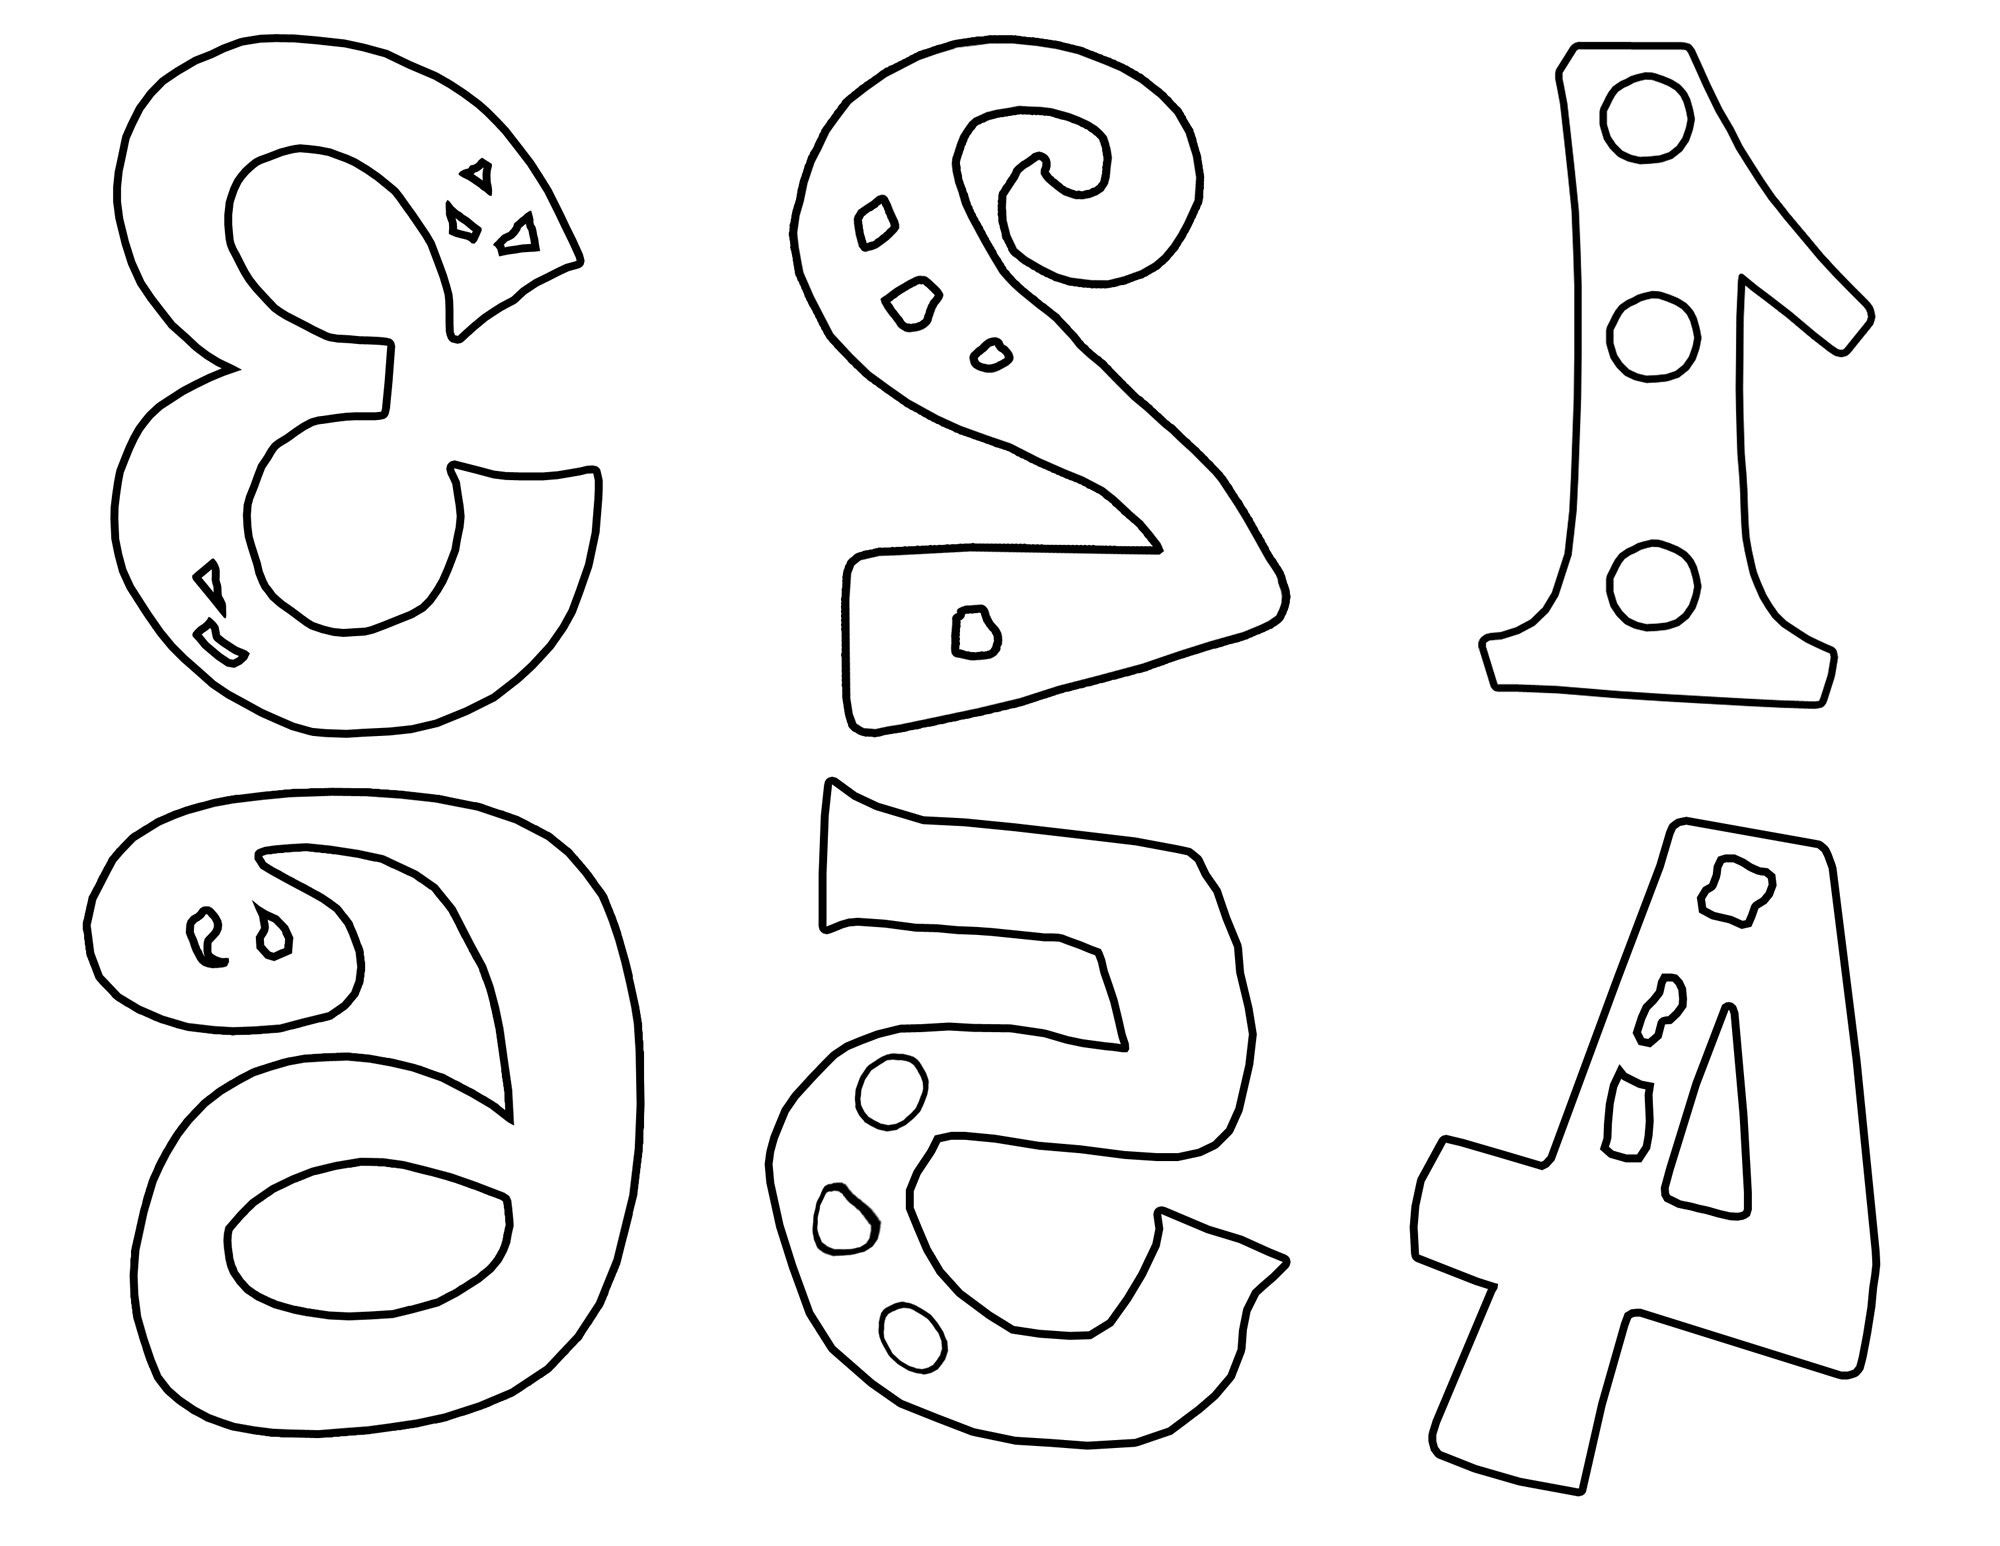 learning coloring pages educational coloring pages coloring pages character pages coloring learning